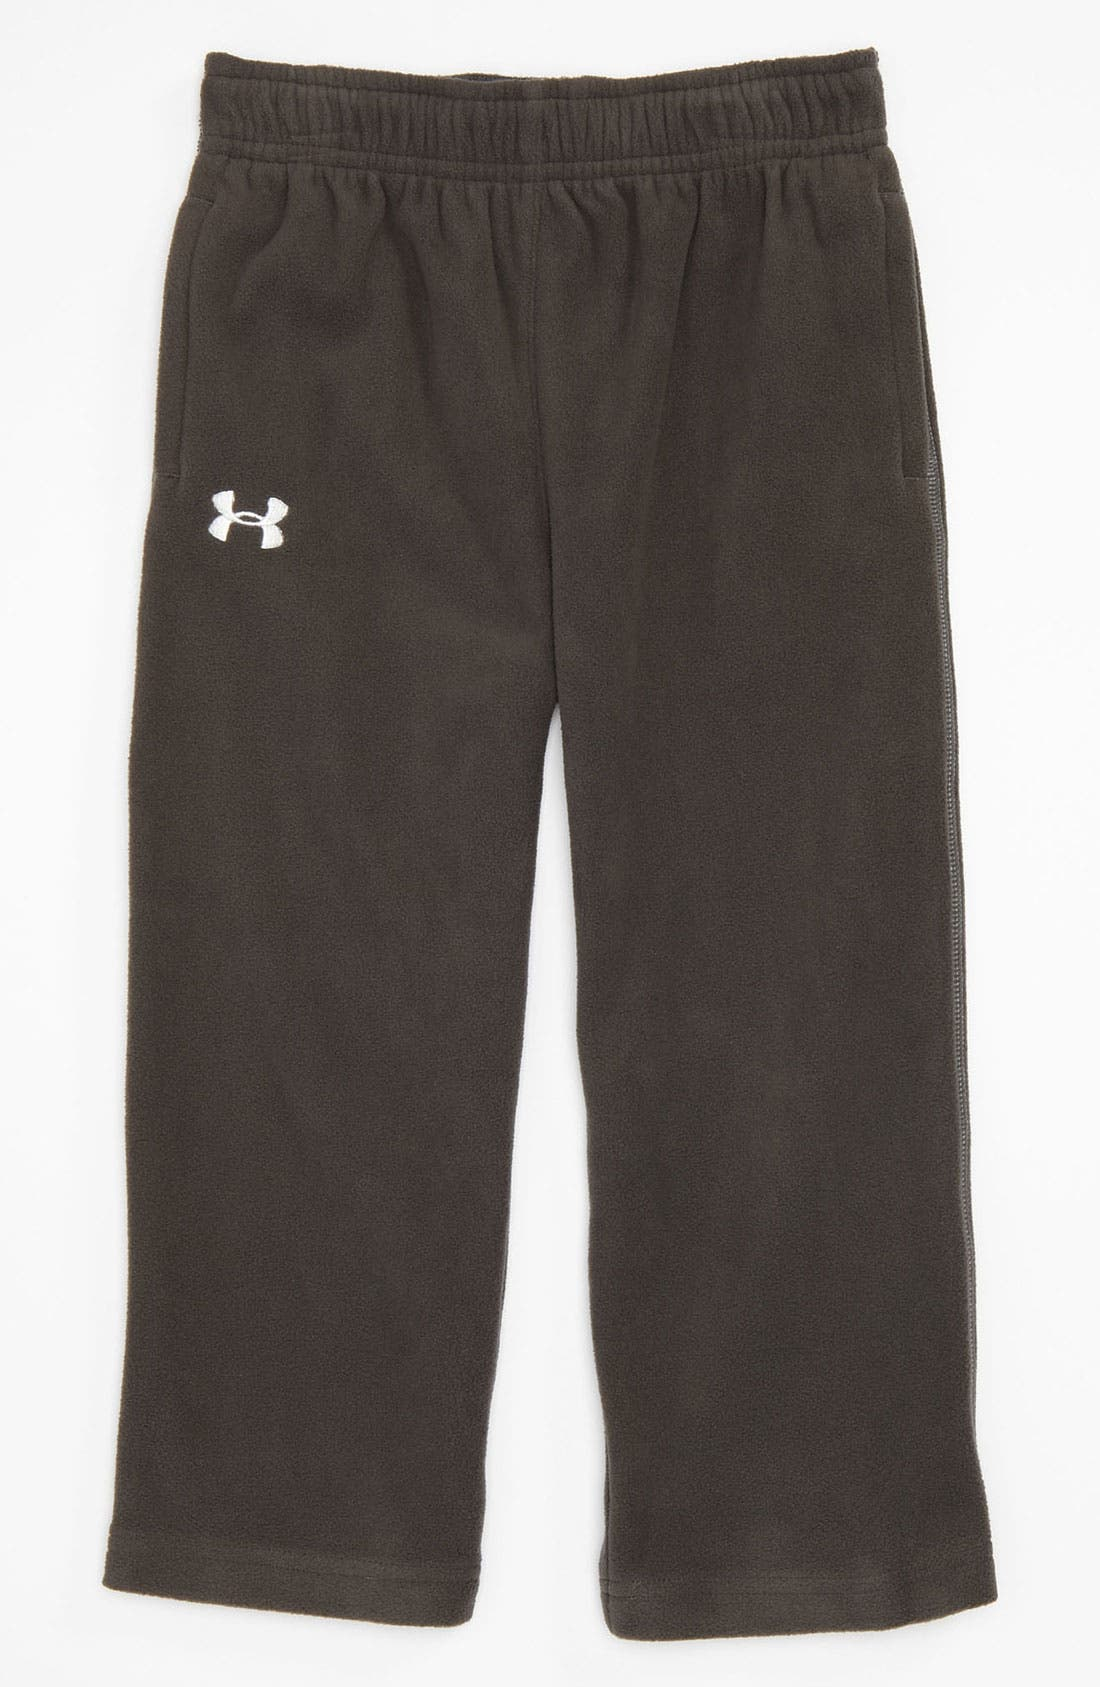 Alternate Image 1 Selected - Under Armour Fleece Pants (Toddler)